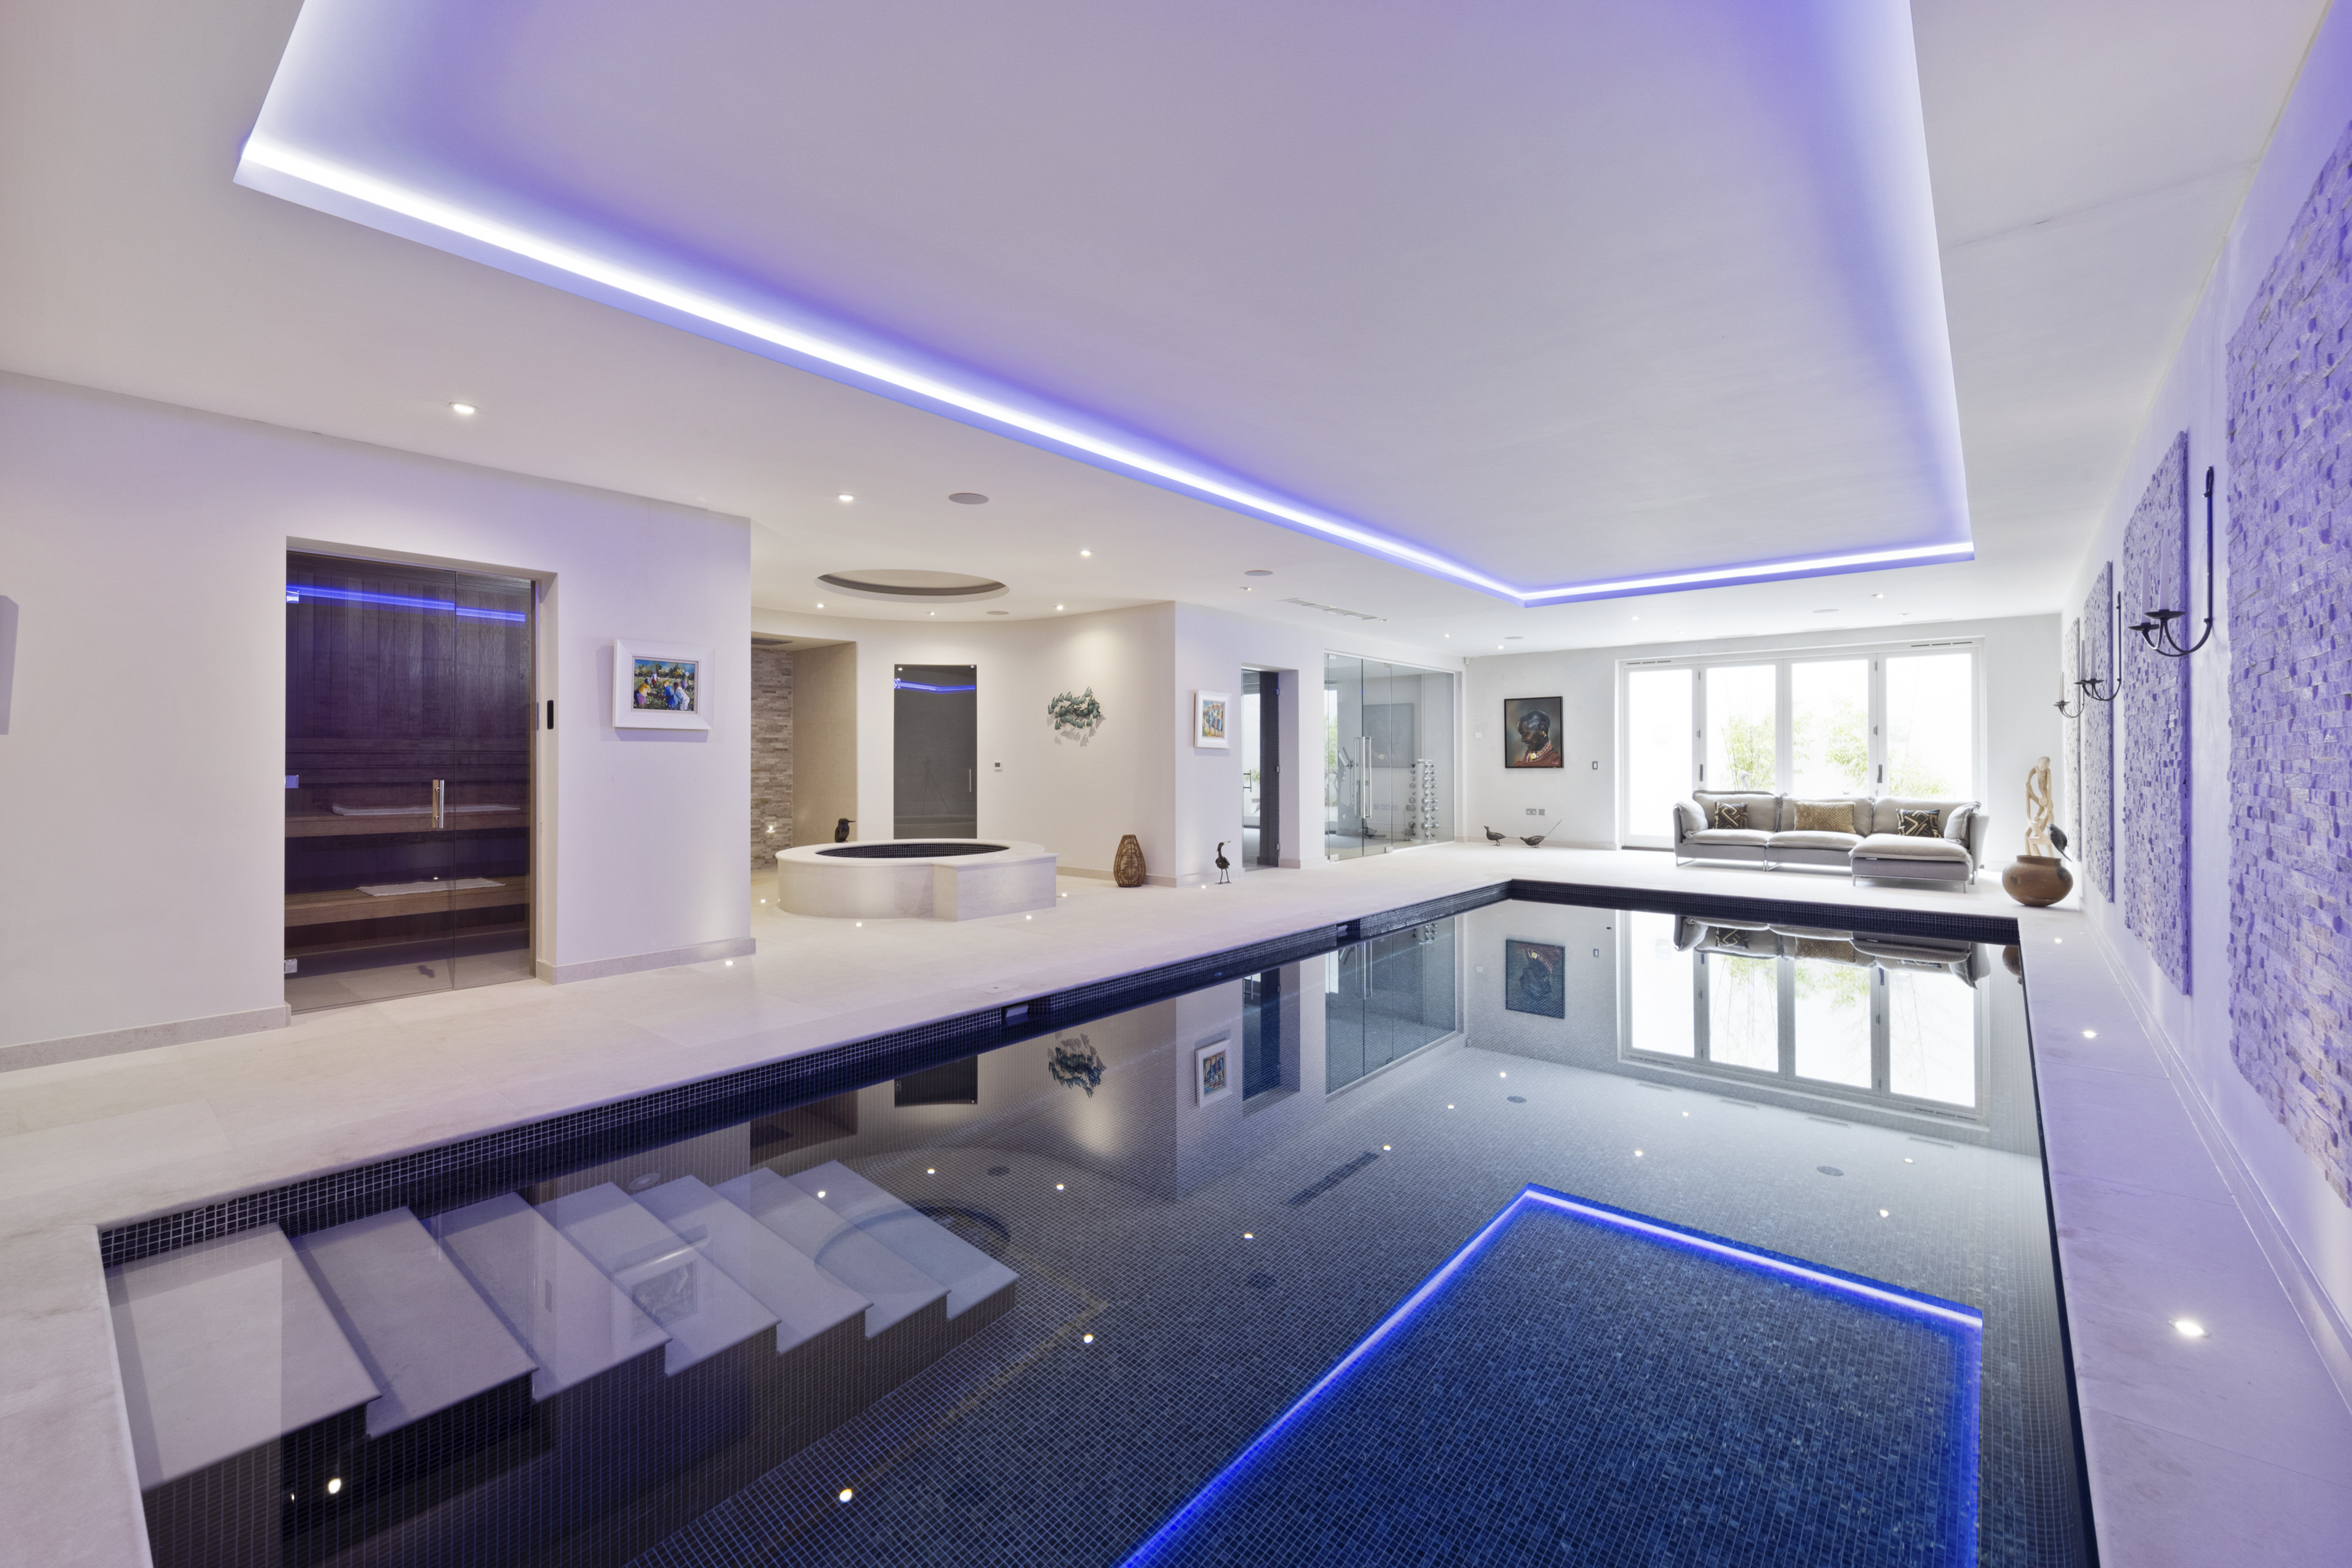 a luxurious indoor pool with blue mood lighting